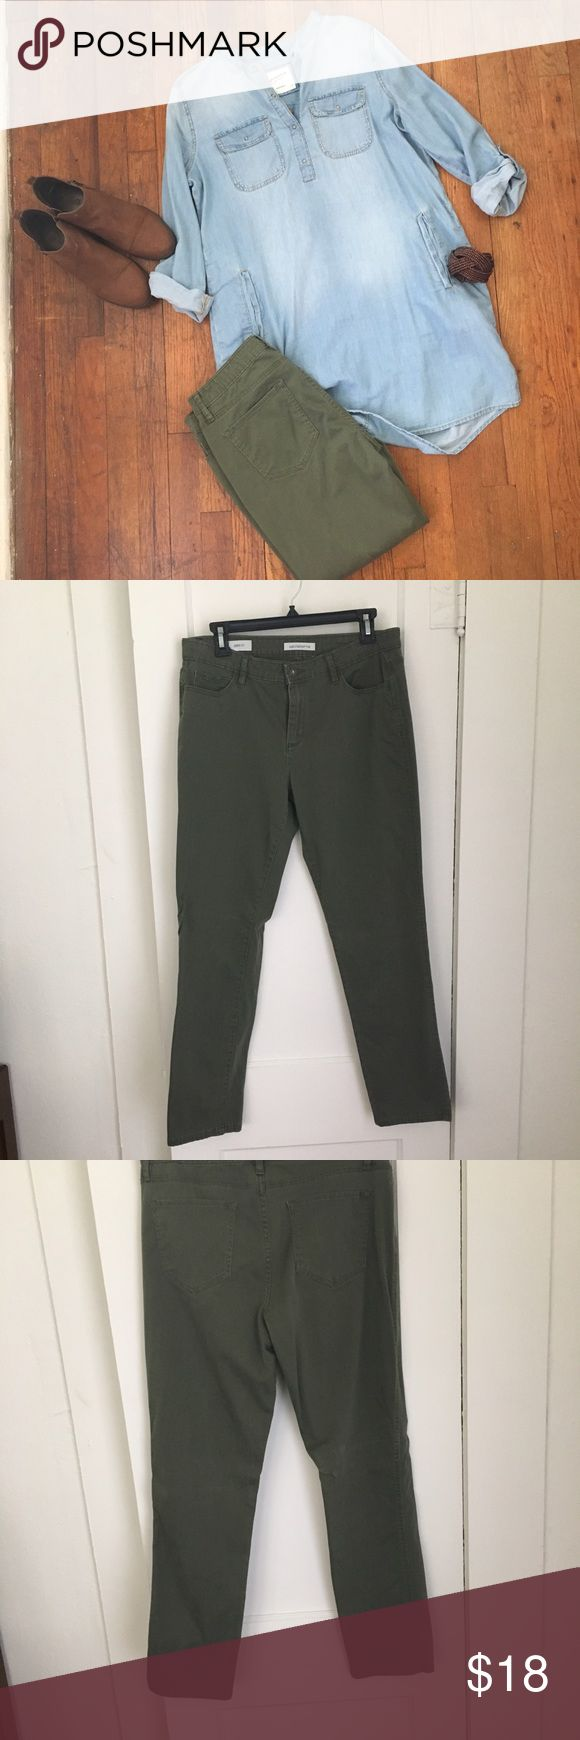 Olive Skinny Jeans Liz  Clairborne City-Fit Skinny Jeans in olive. Only worn once in good condition. Liz Claiborne Jeans Skinny